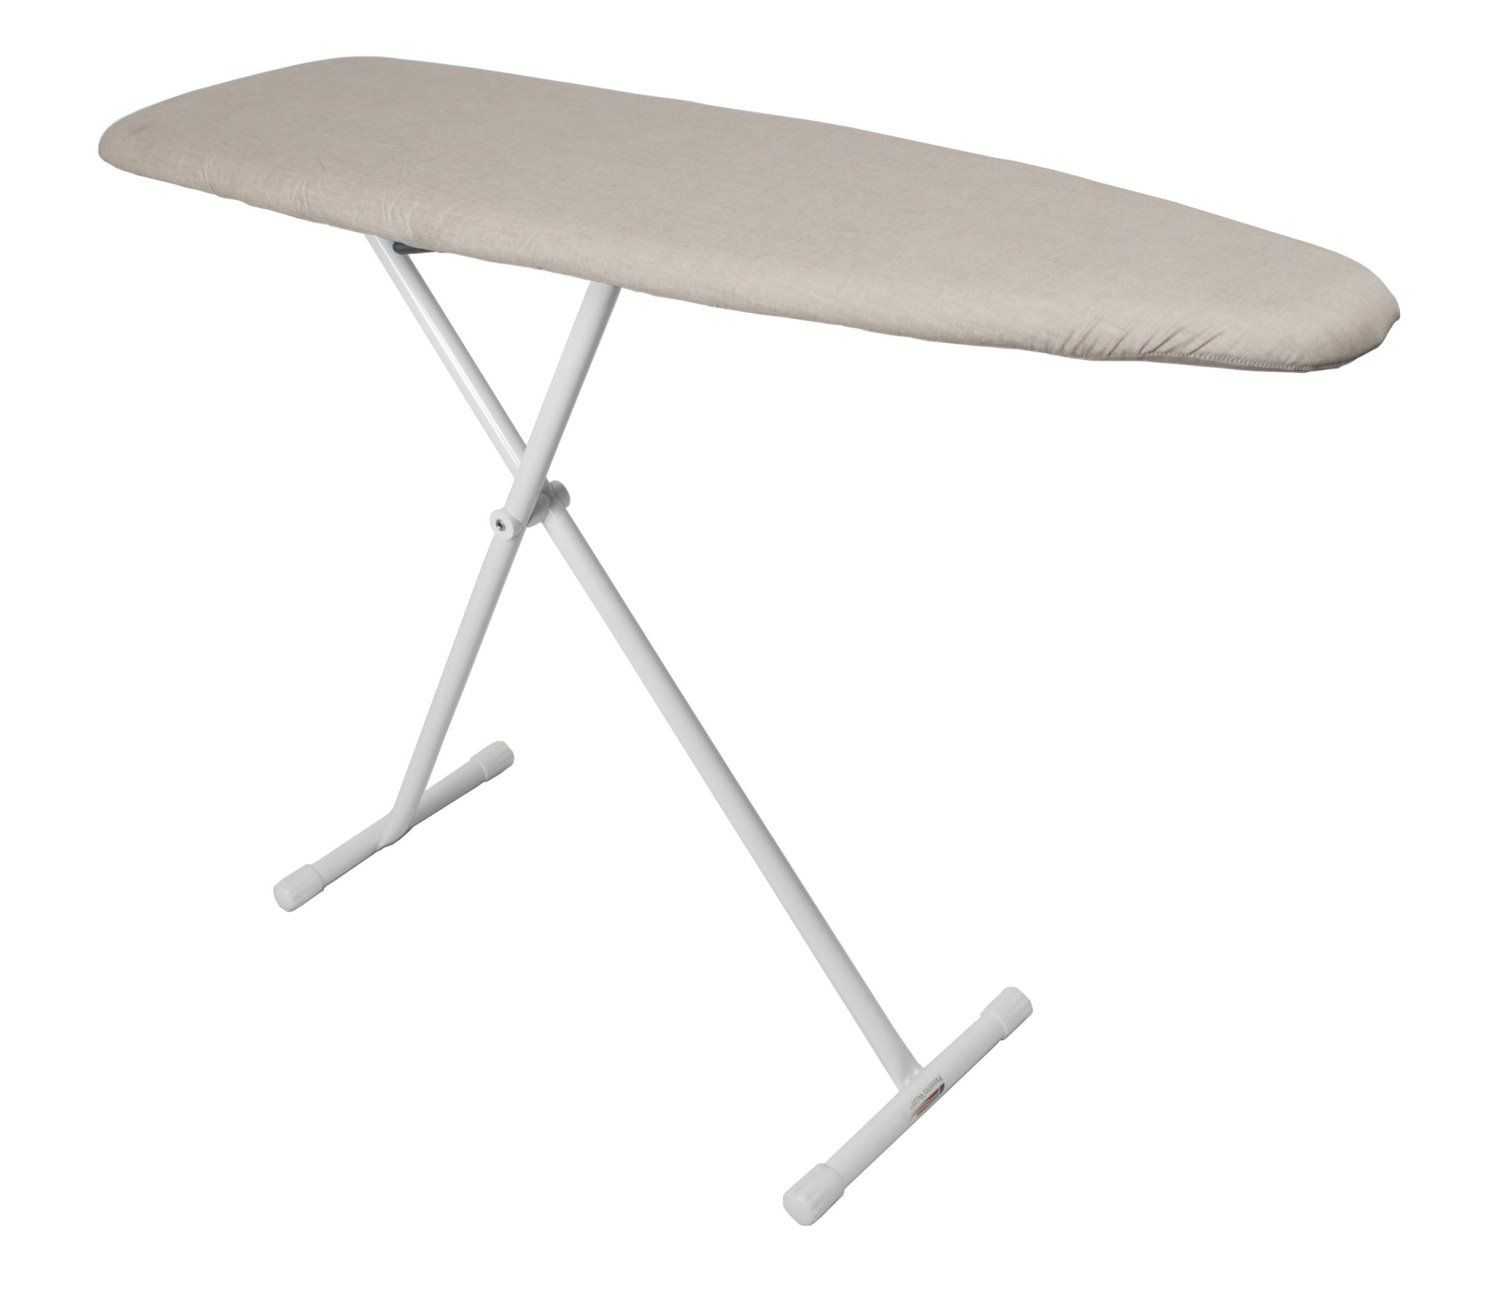 Armoire Ironing Board- Toast Cover